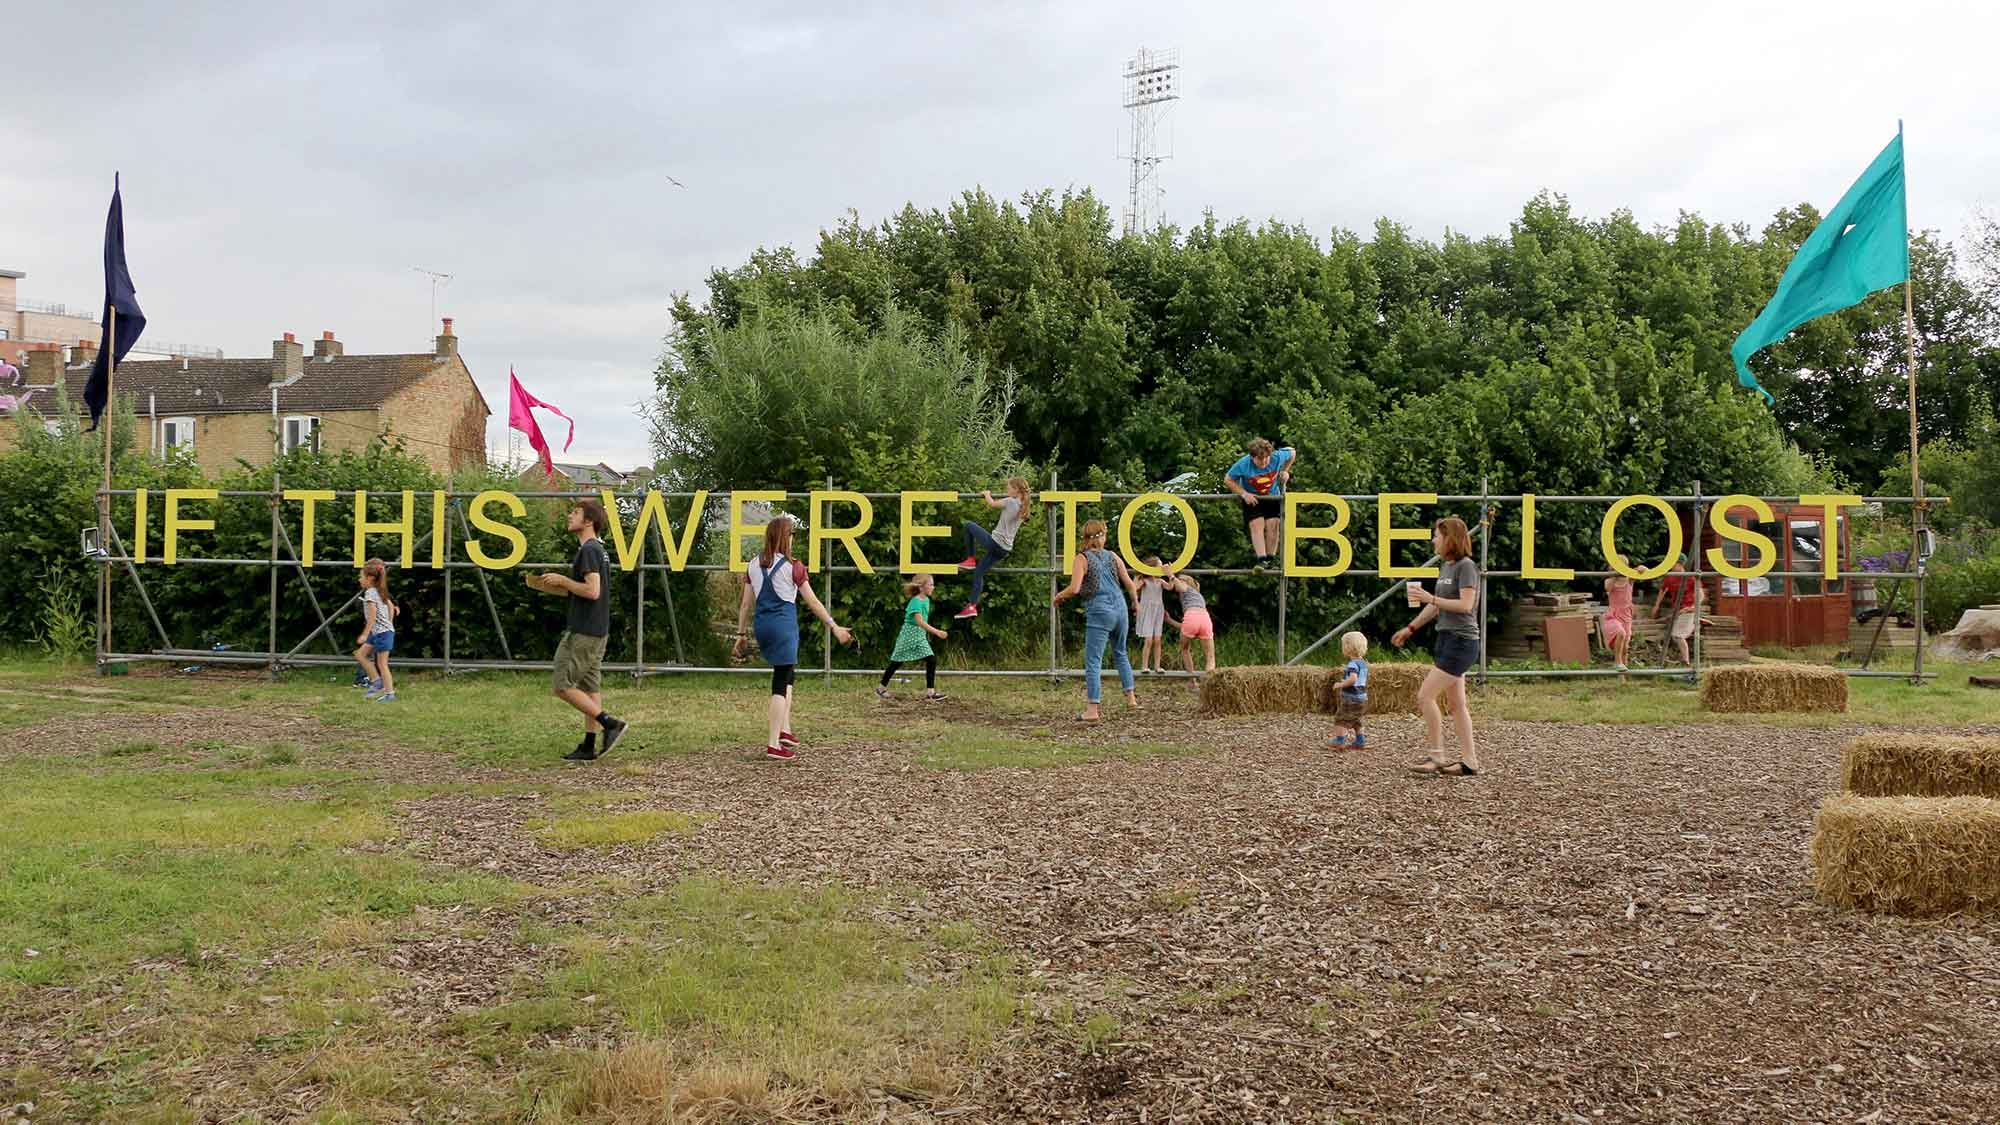 Jessie Brennan, If This Were to Be Lost, (2016-17), painted birch plywood on scaffold, 1.9 x 19 m, situated at The Green Backyard, Peterborough. (Photo: Jessie Brennan)